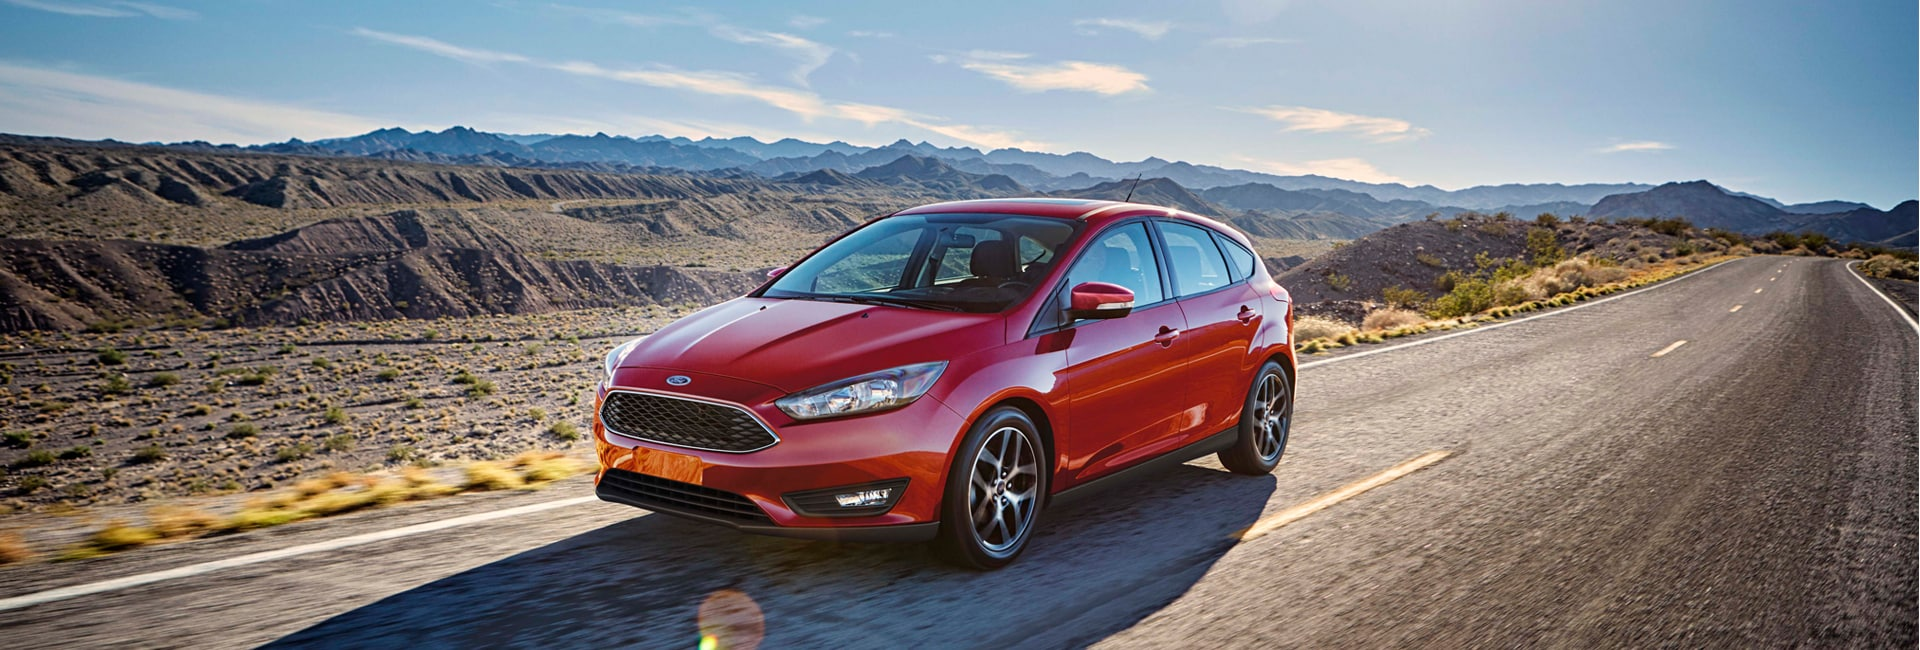 Ford Focus Exterior Vehicle Features